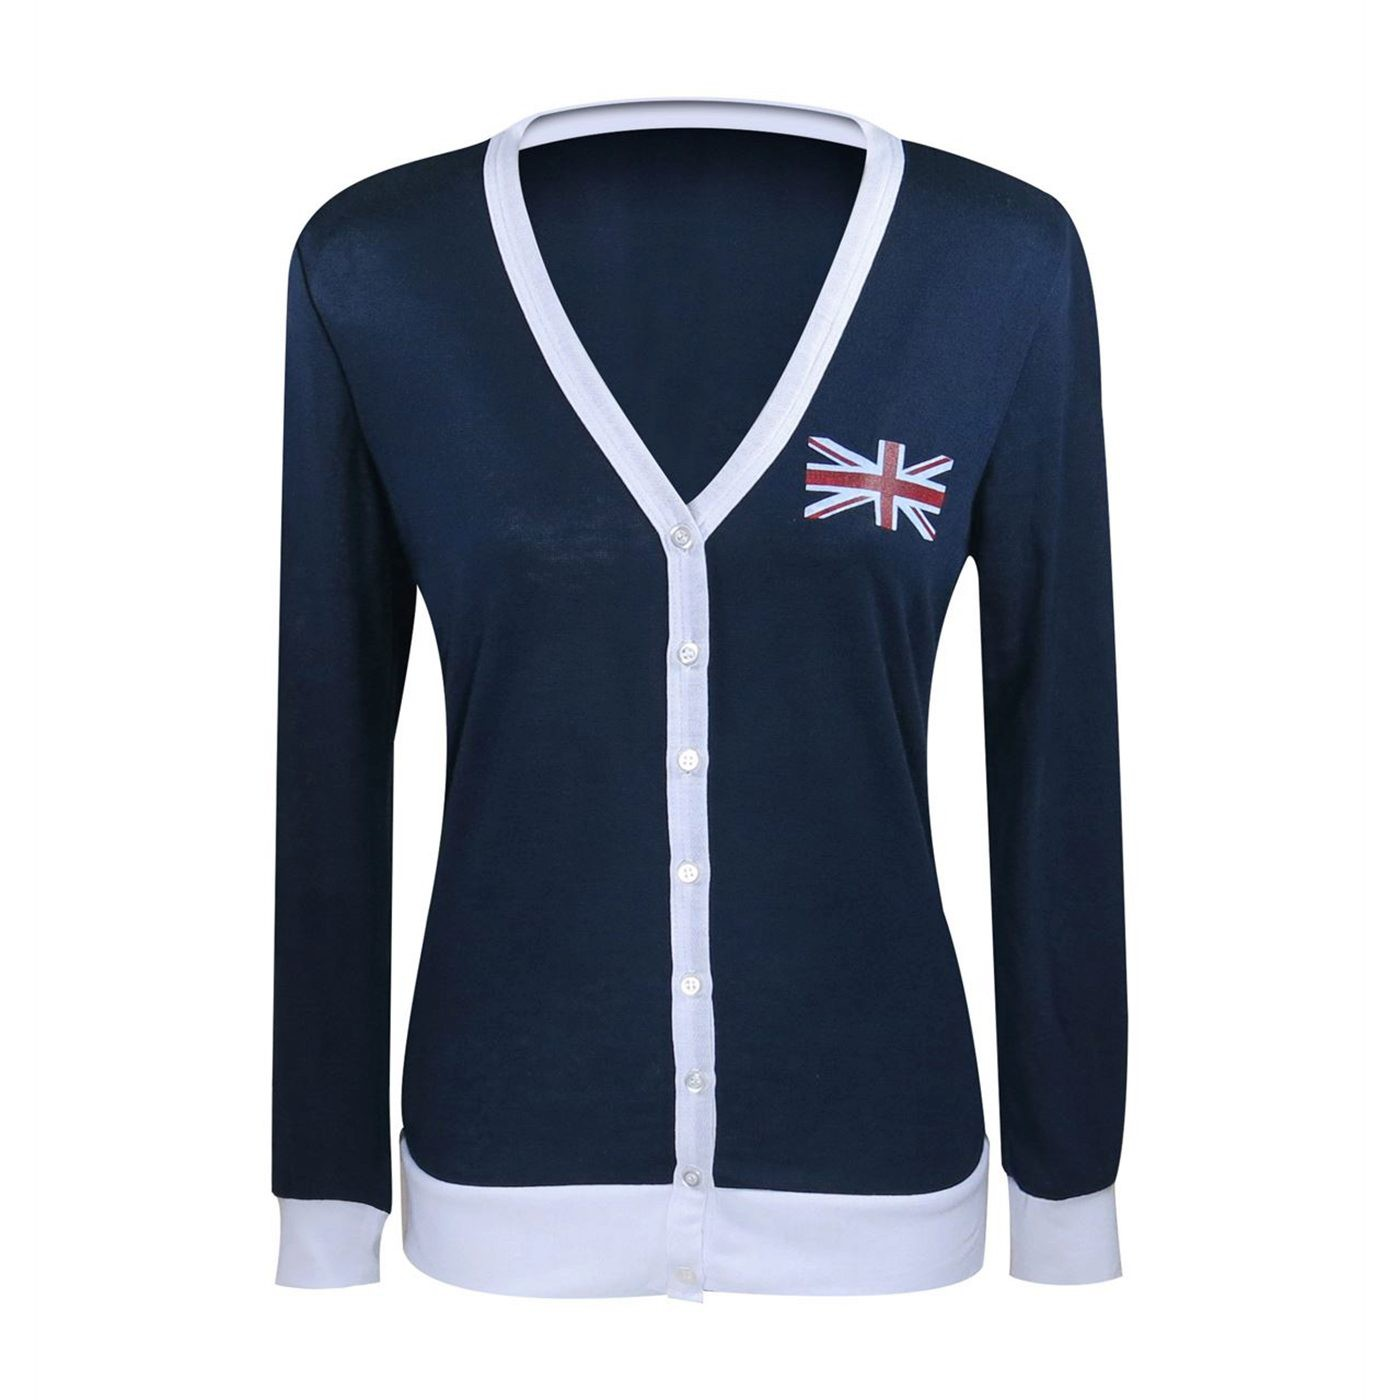 Doctor Who Women's Tardis Cardigan